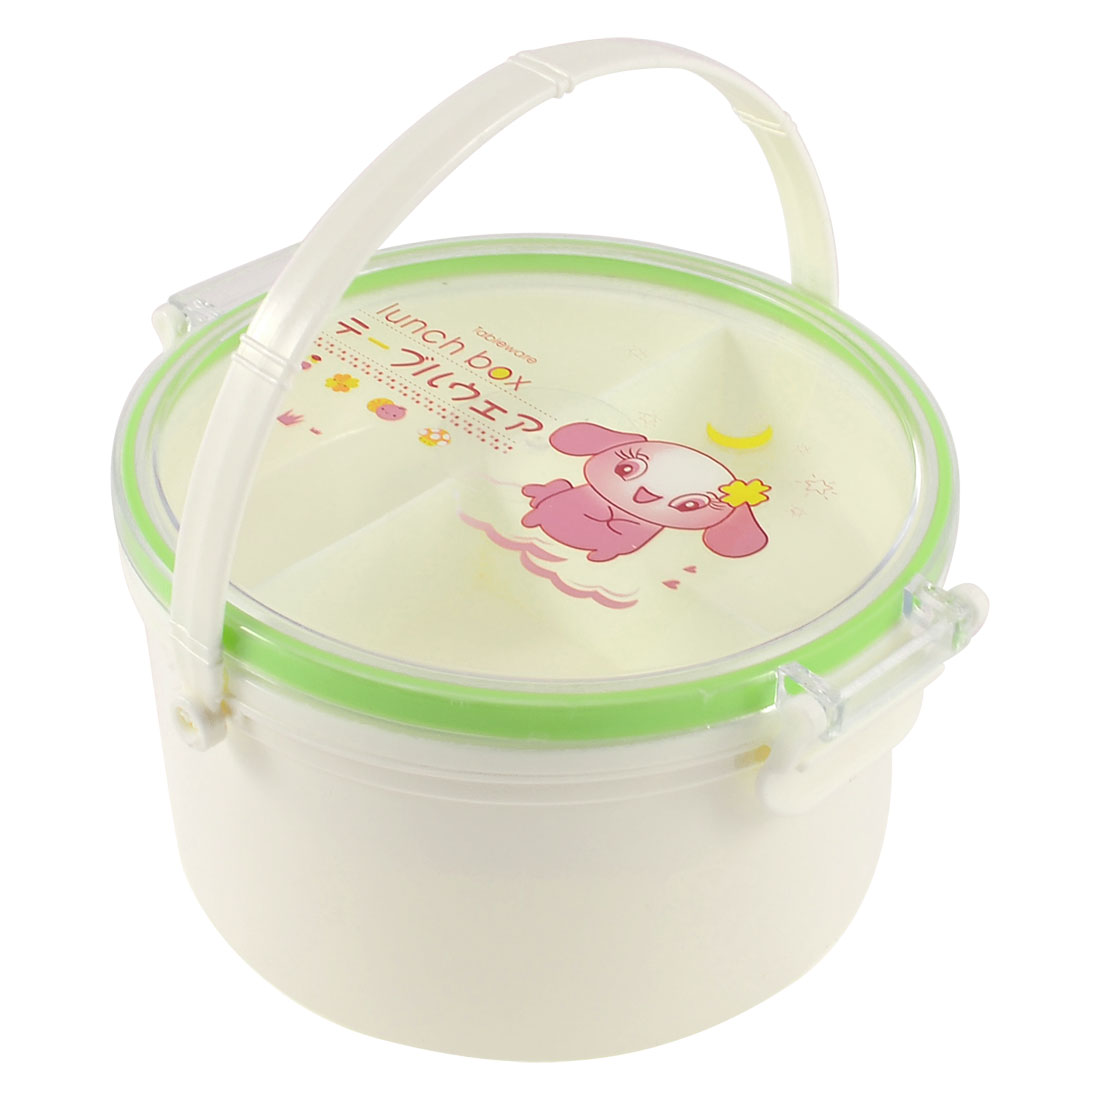 Household Detachable Lid 4 Compartments 2 Layers Lunch Box Green w Spoon Fork